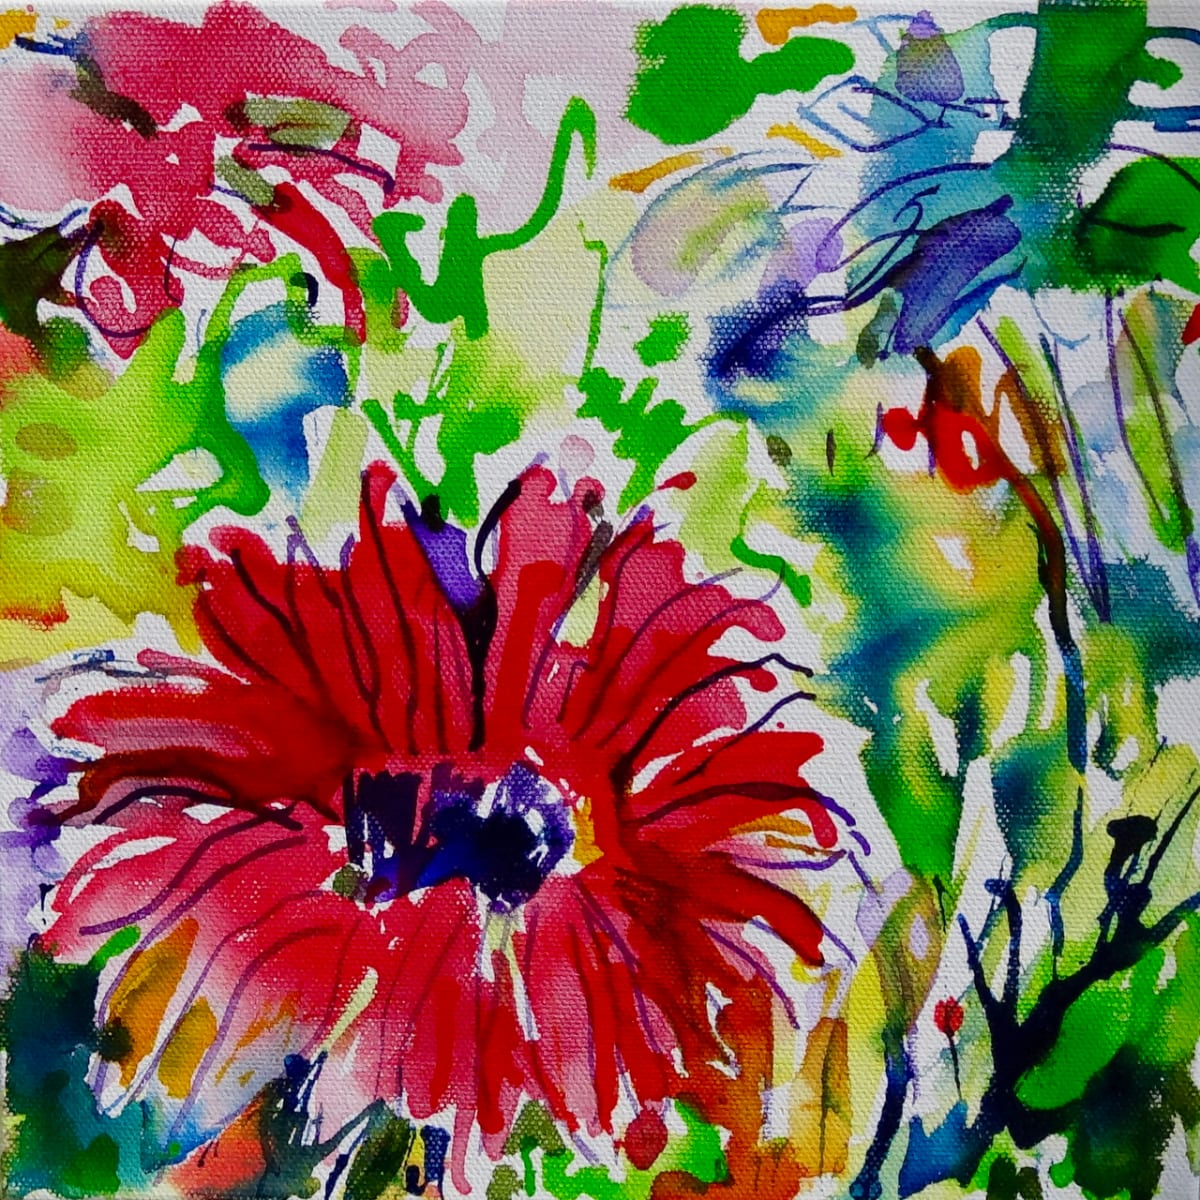 Reimagining the Garden – Painting with Ink